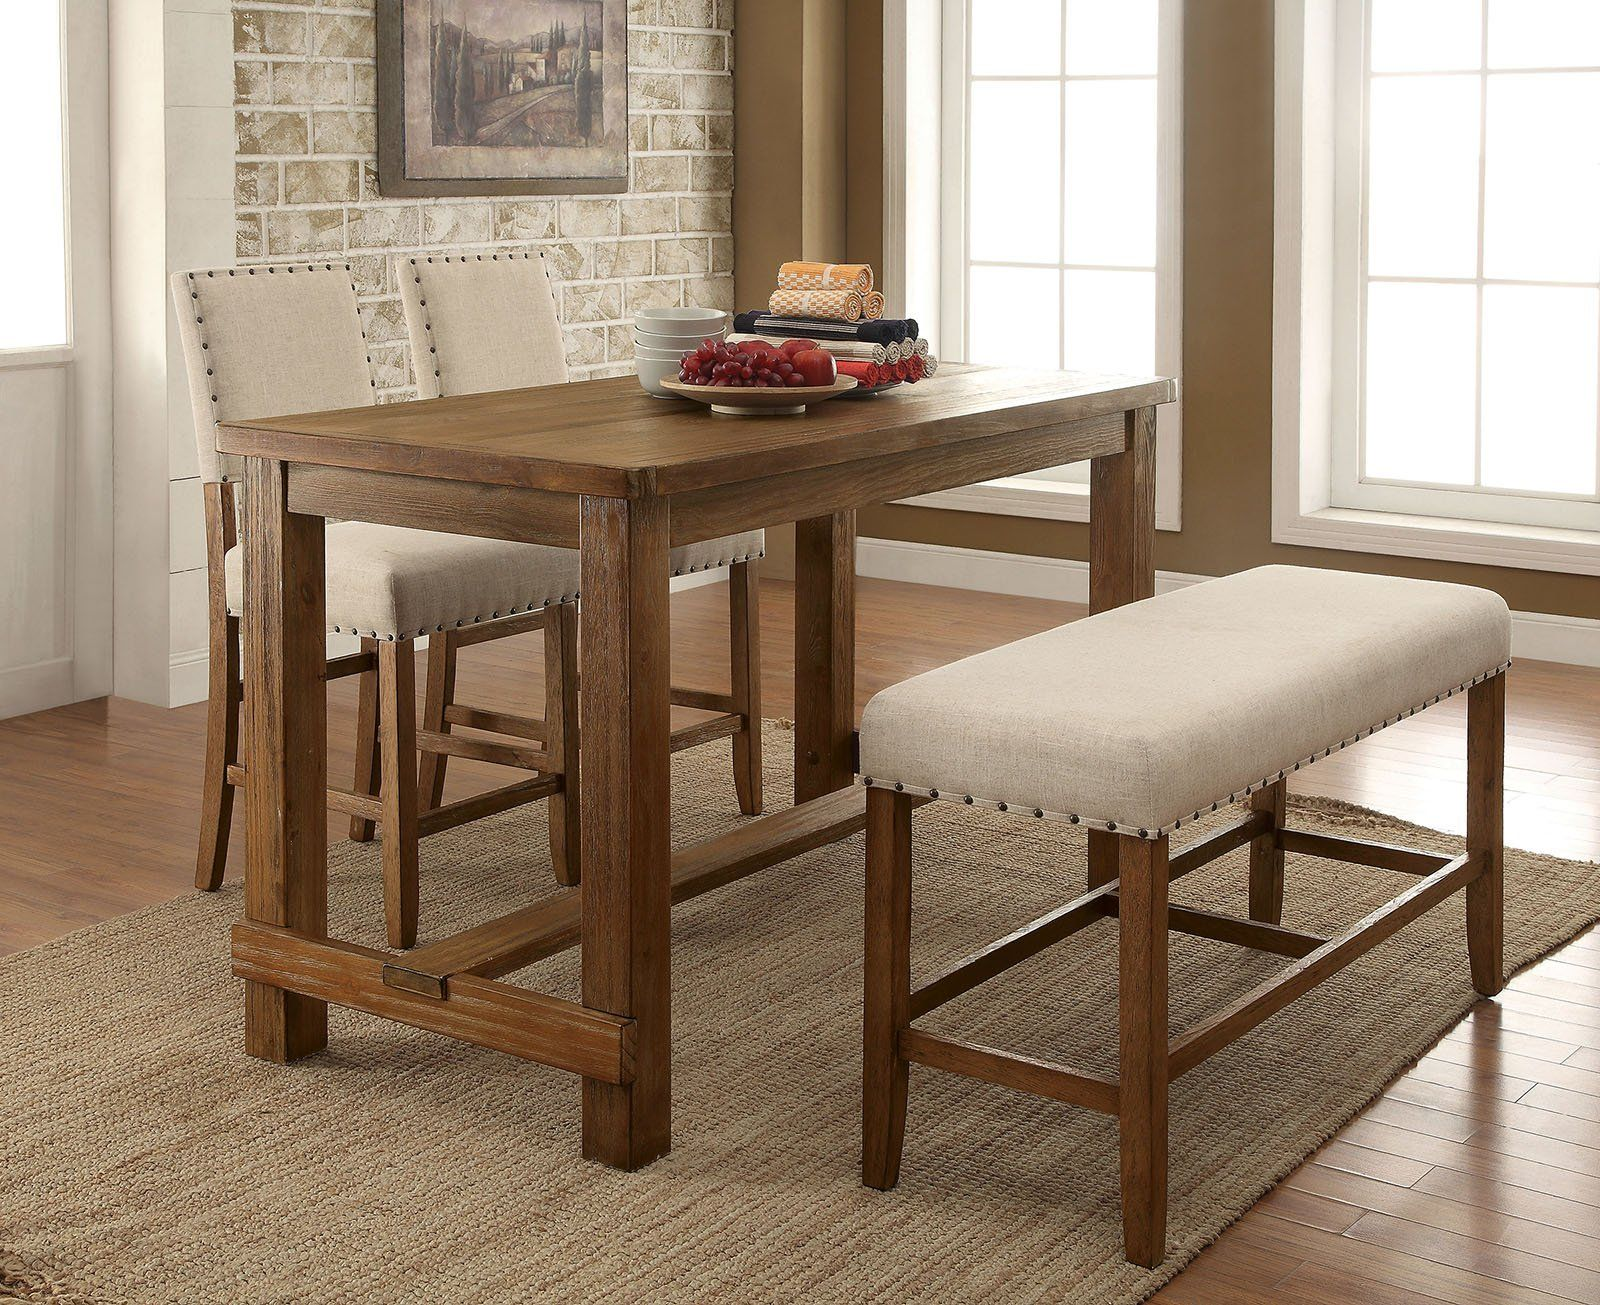 42++ Counter height dining table with chairs Tips